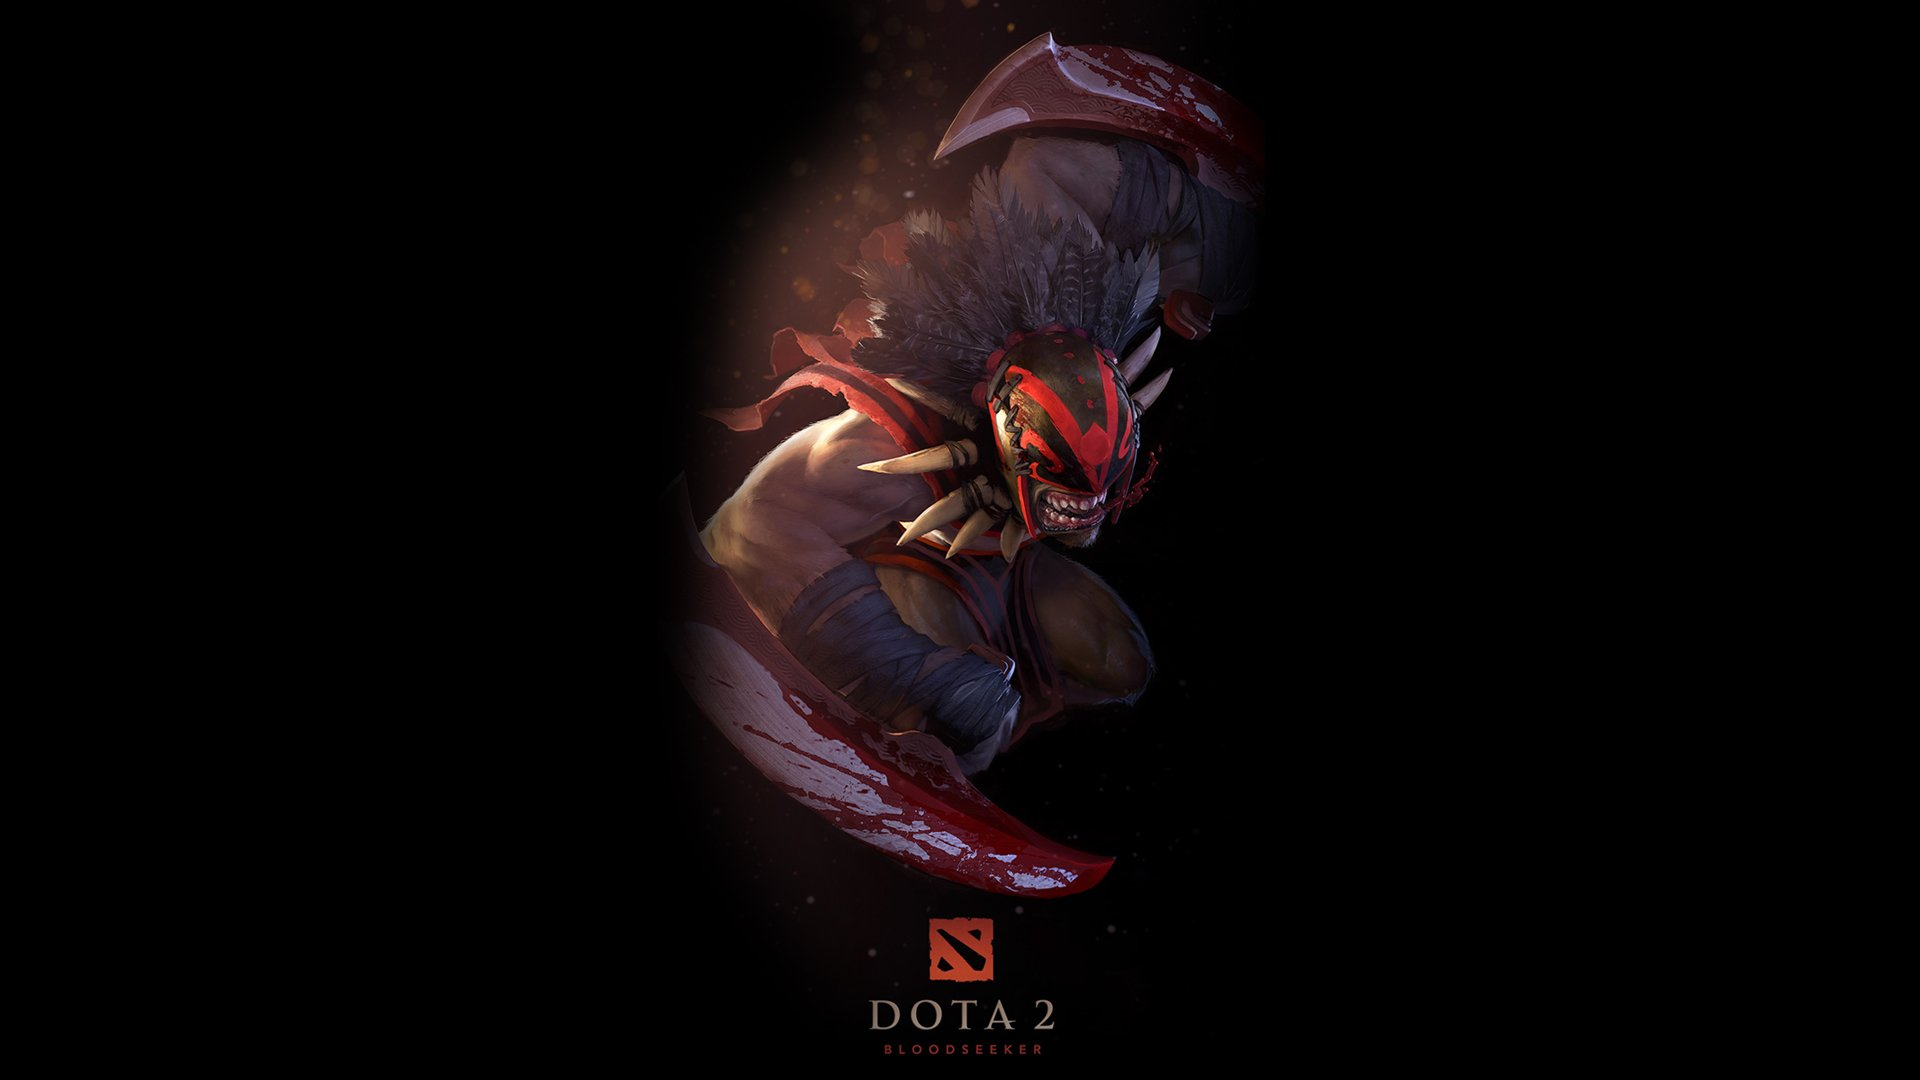 5 Bloodseeker Dota 2 HD Wallpapers Background Images 1920x1080